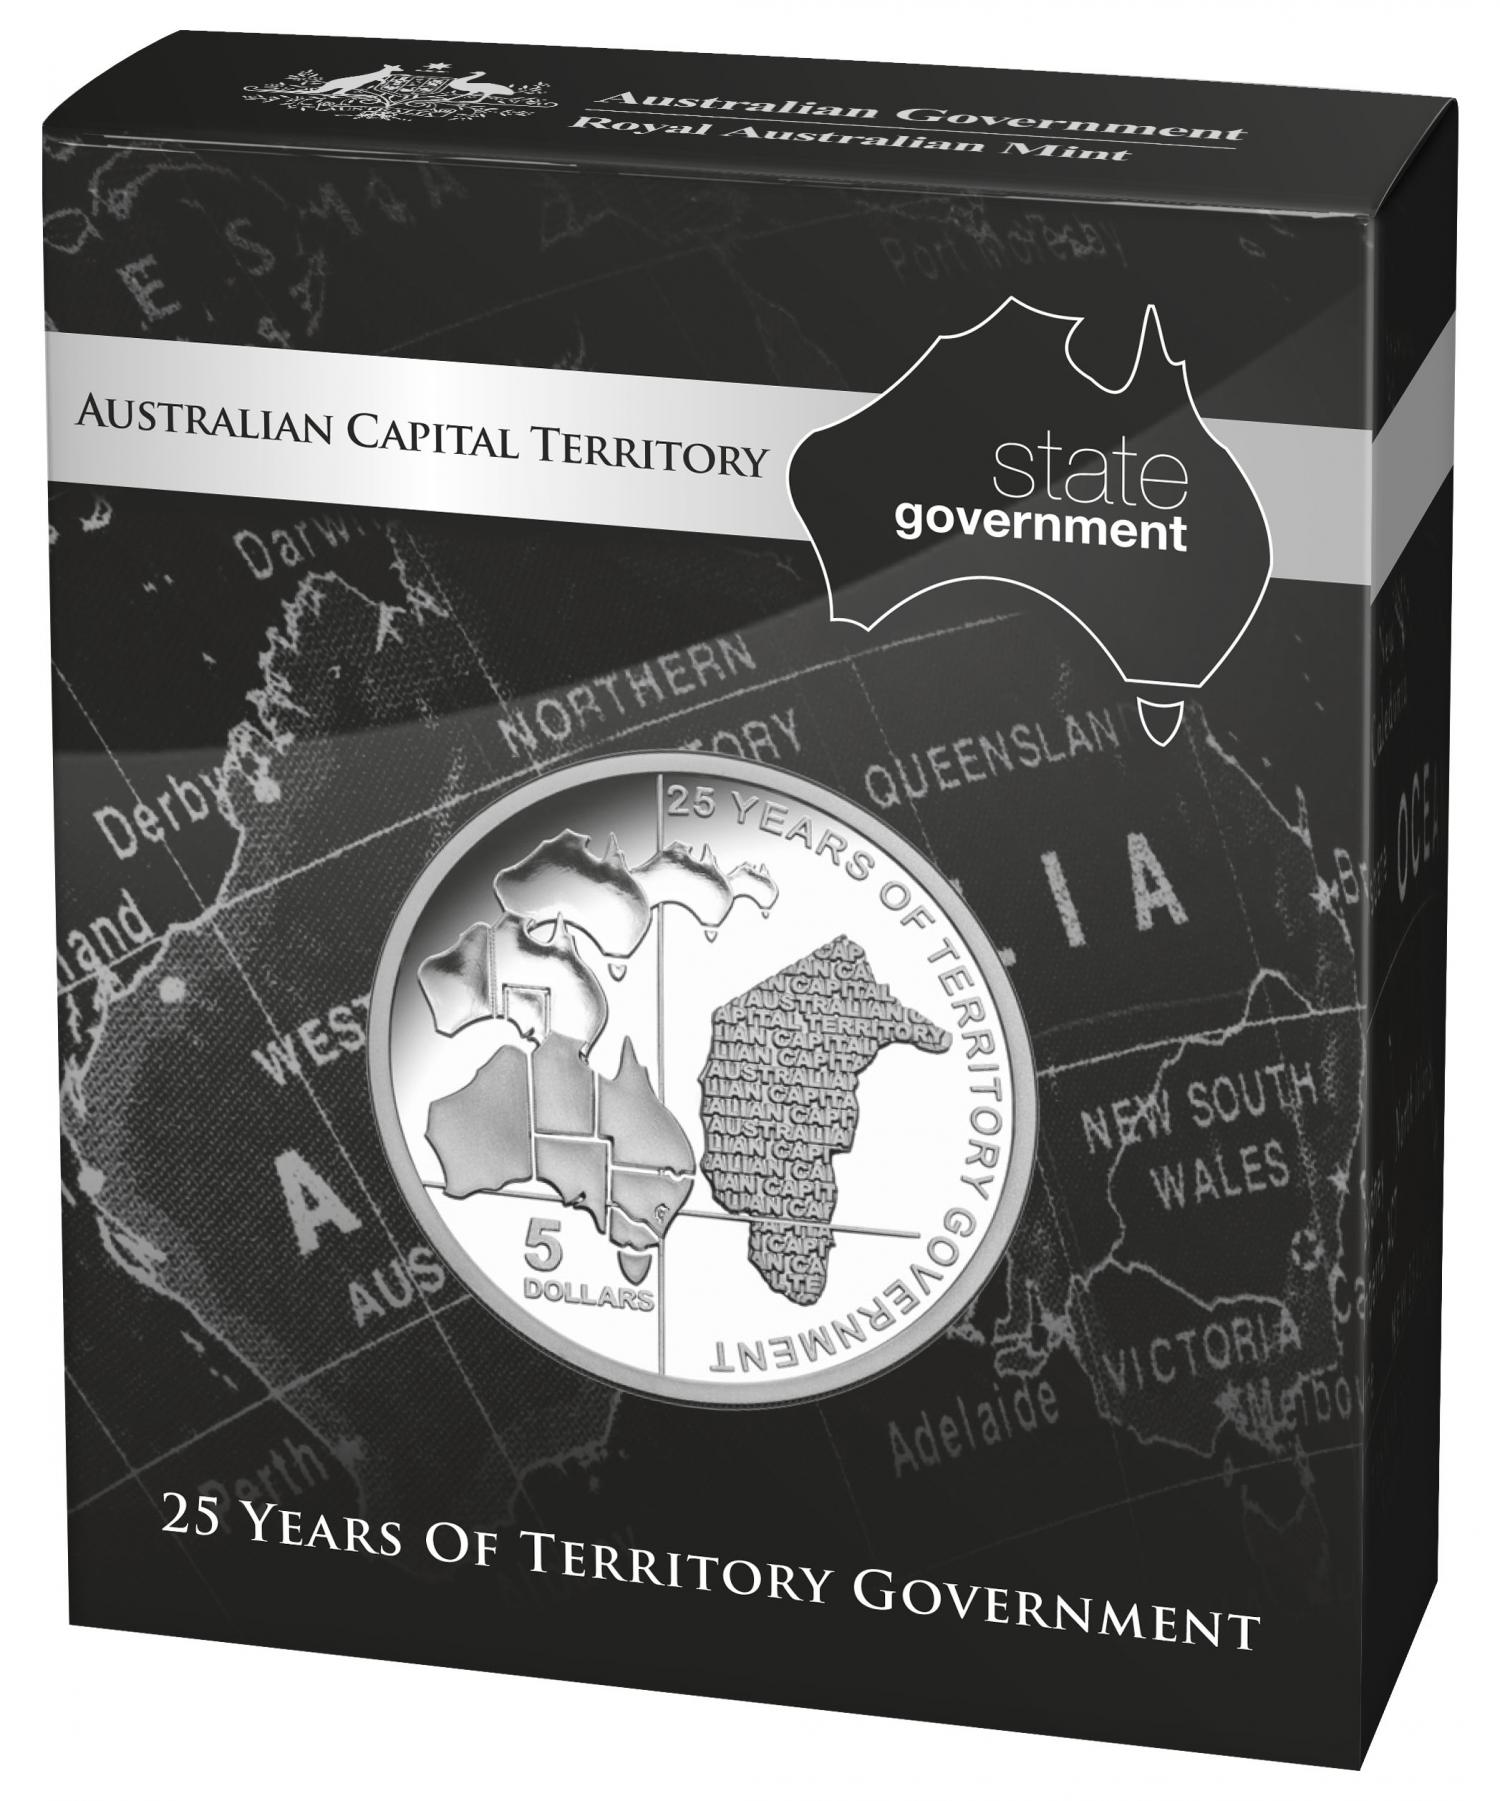 Thumbnail for 2014 $5.00 Silver Proof Australian Capital Territory 25 Years of Territory Government